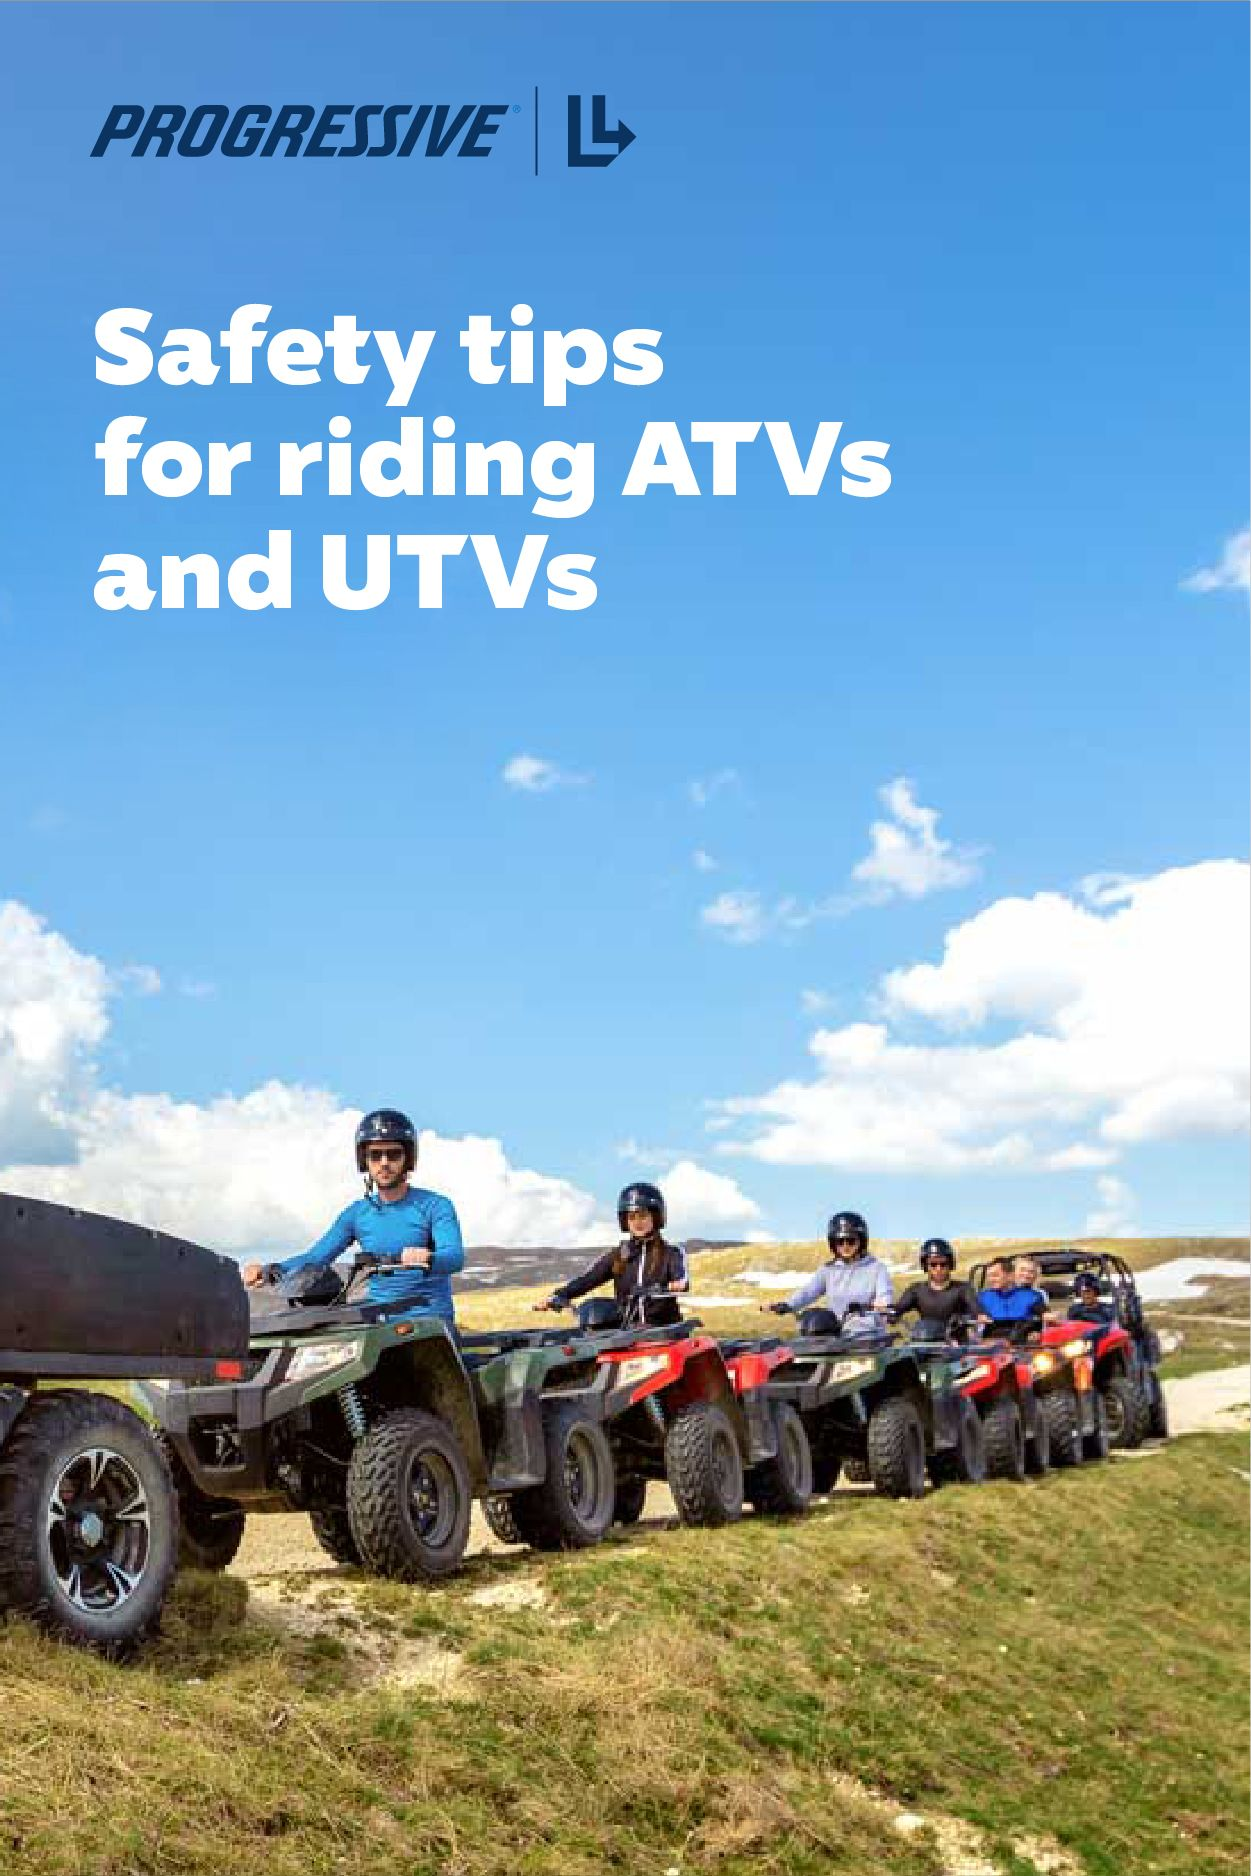 Safety tips for riding ATVs and UTVs in 2020 Safety tips